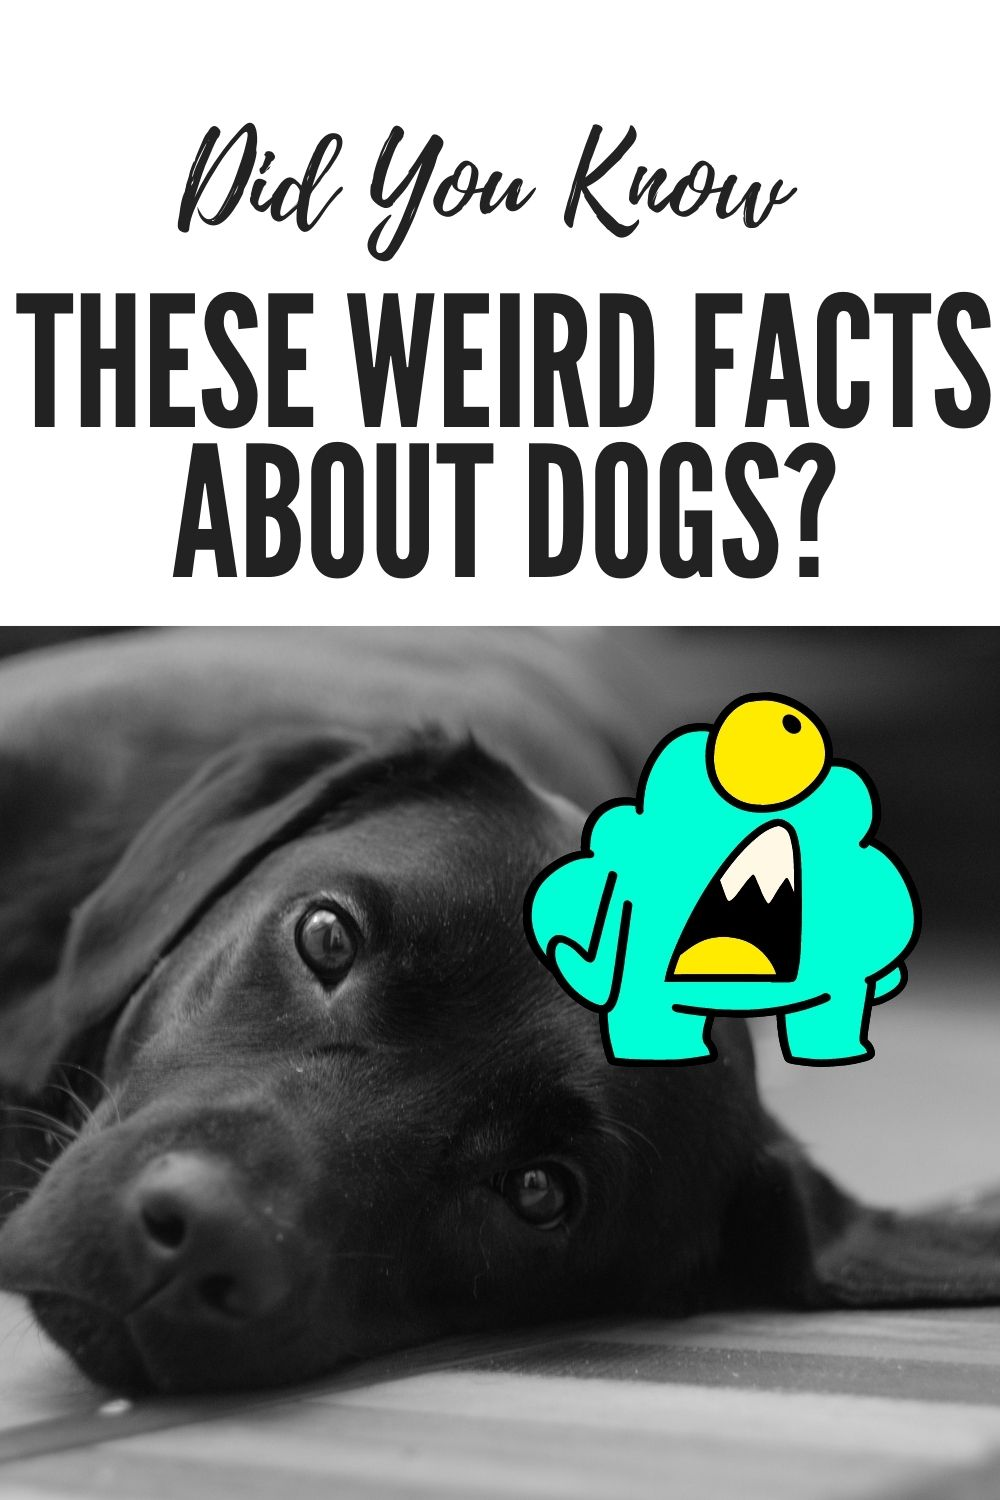 Did You Know These Weird Facts About Dogs?